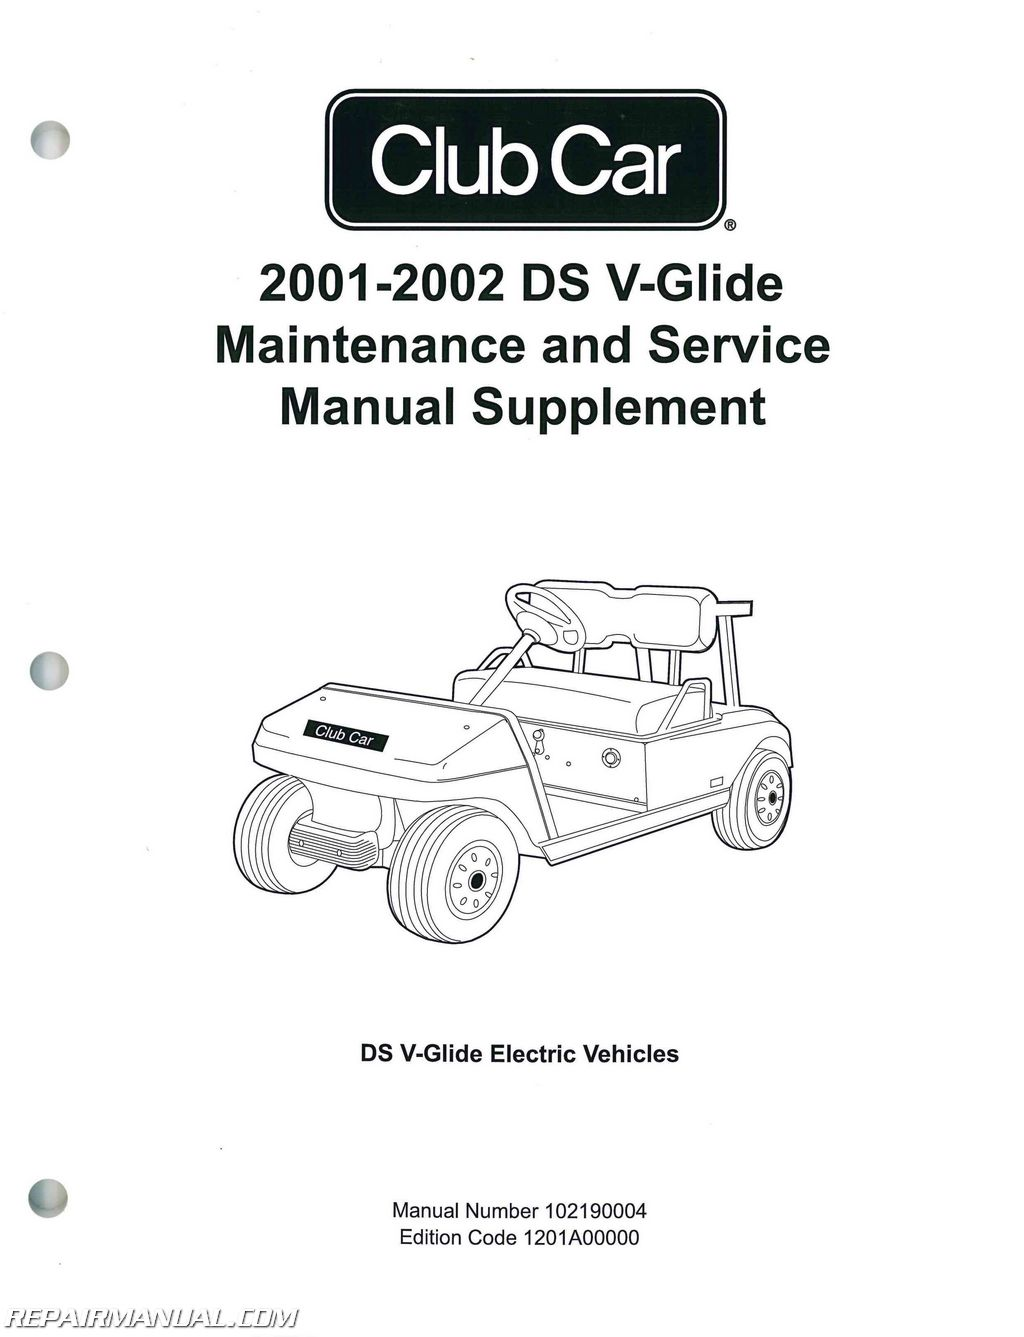 36v club car v glide wiring diagram wiring library2001 2002 club car ds v glide golf car maintenance and service manual supplement